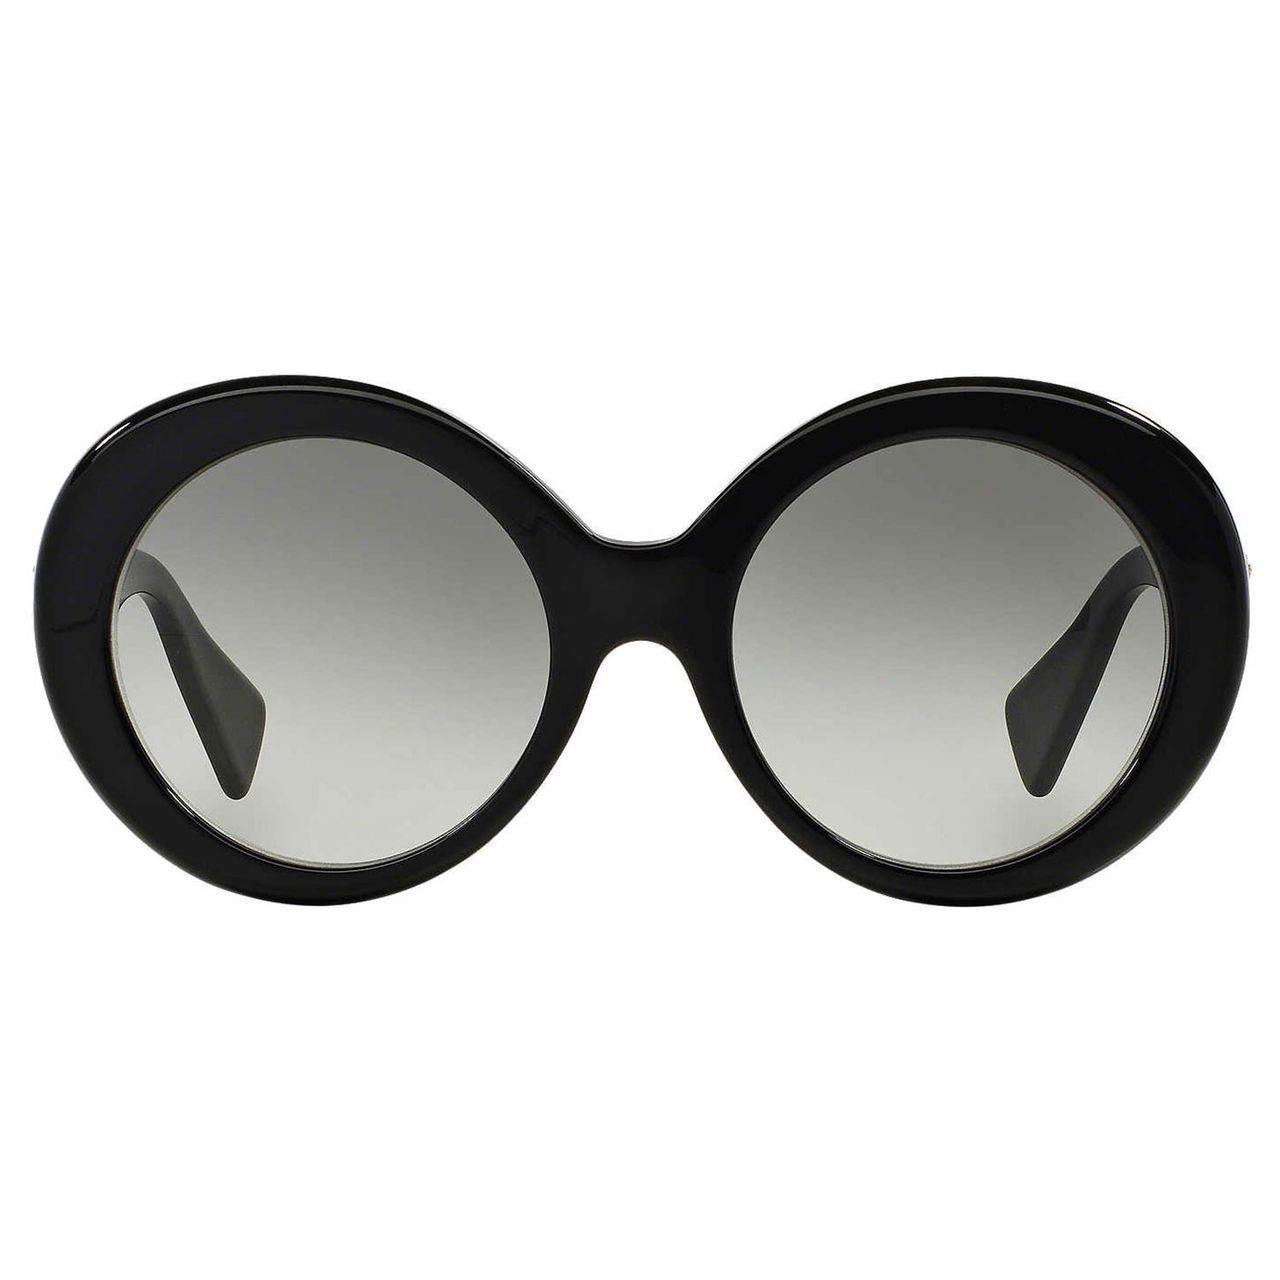 7dd2e39d807d Shop Versace Women s VE4298 Plastic Round Sunglasses - Free Shipping Today  - Overstock - 10438053